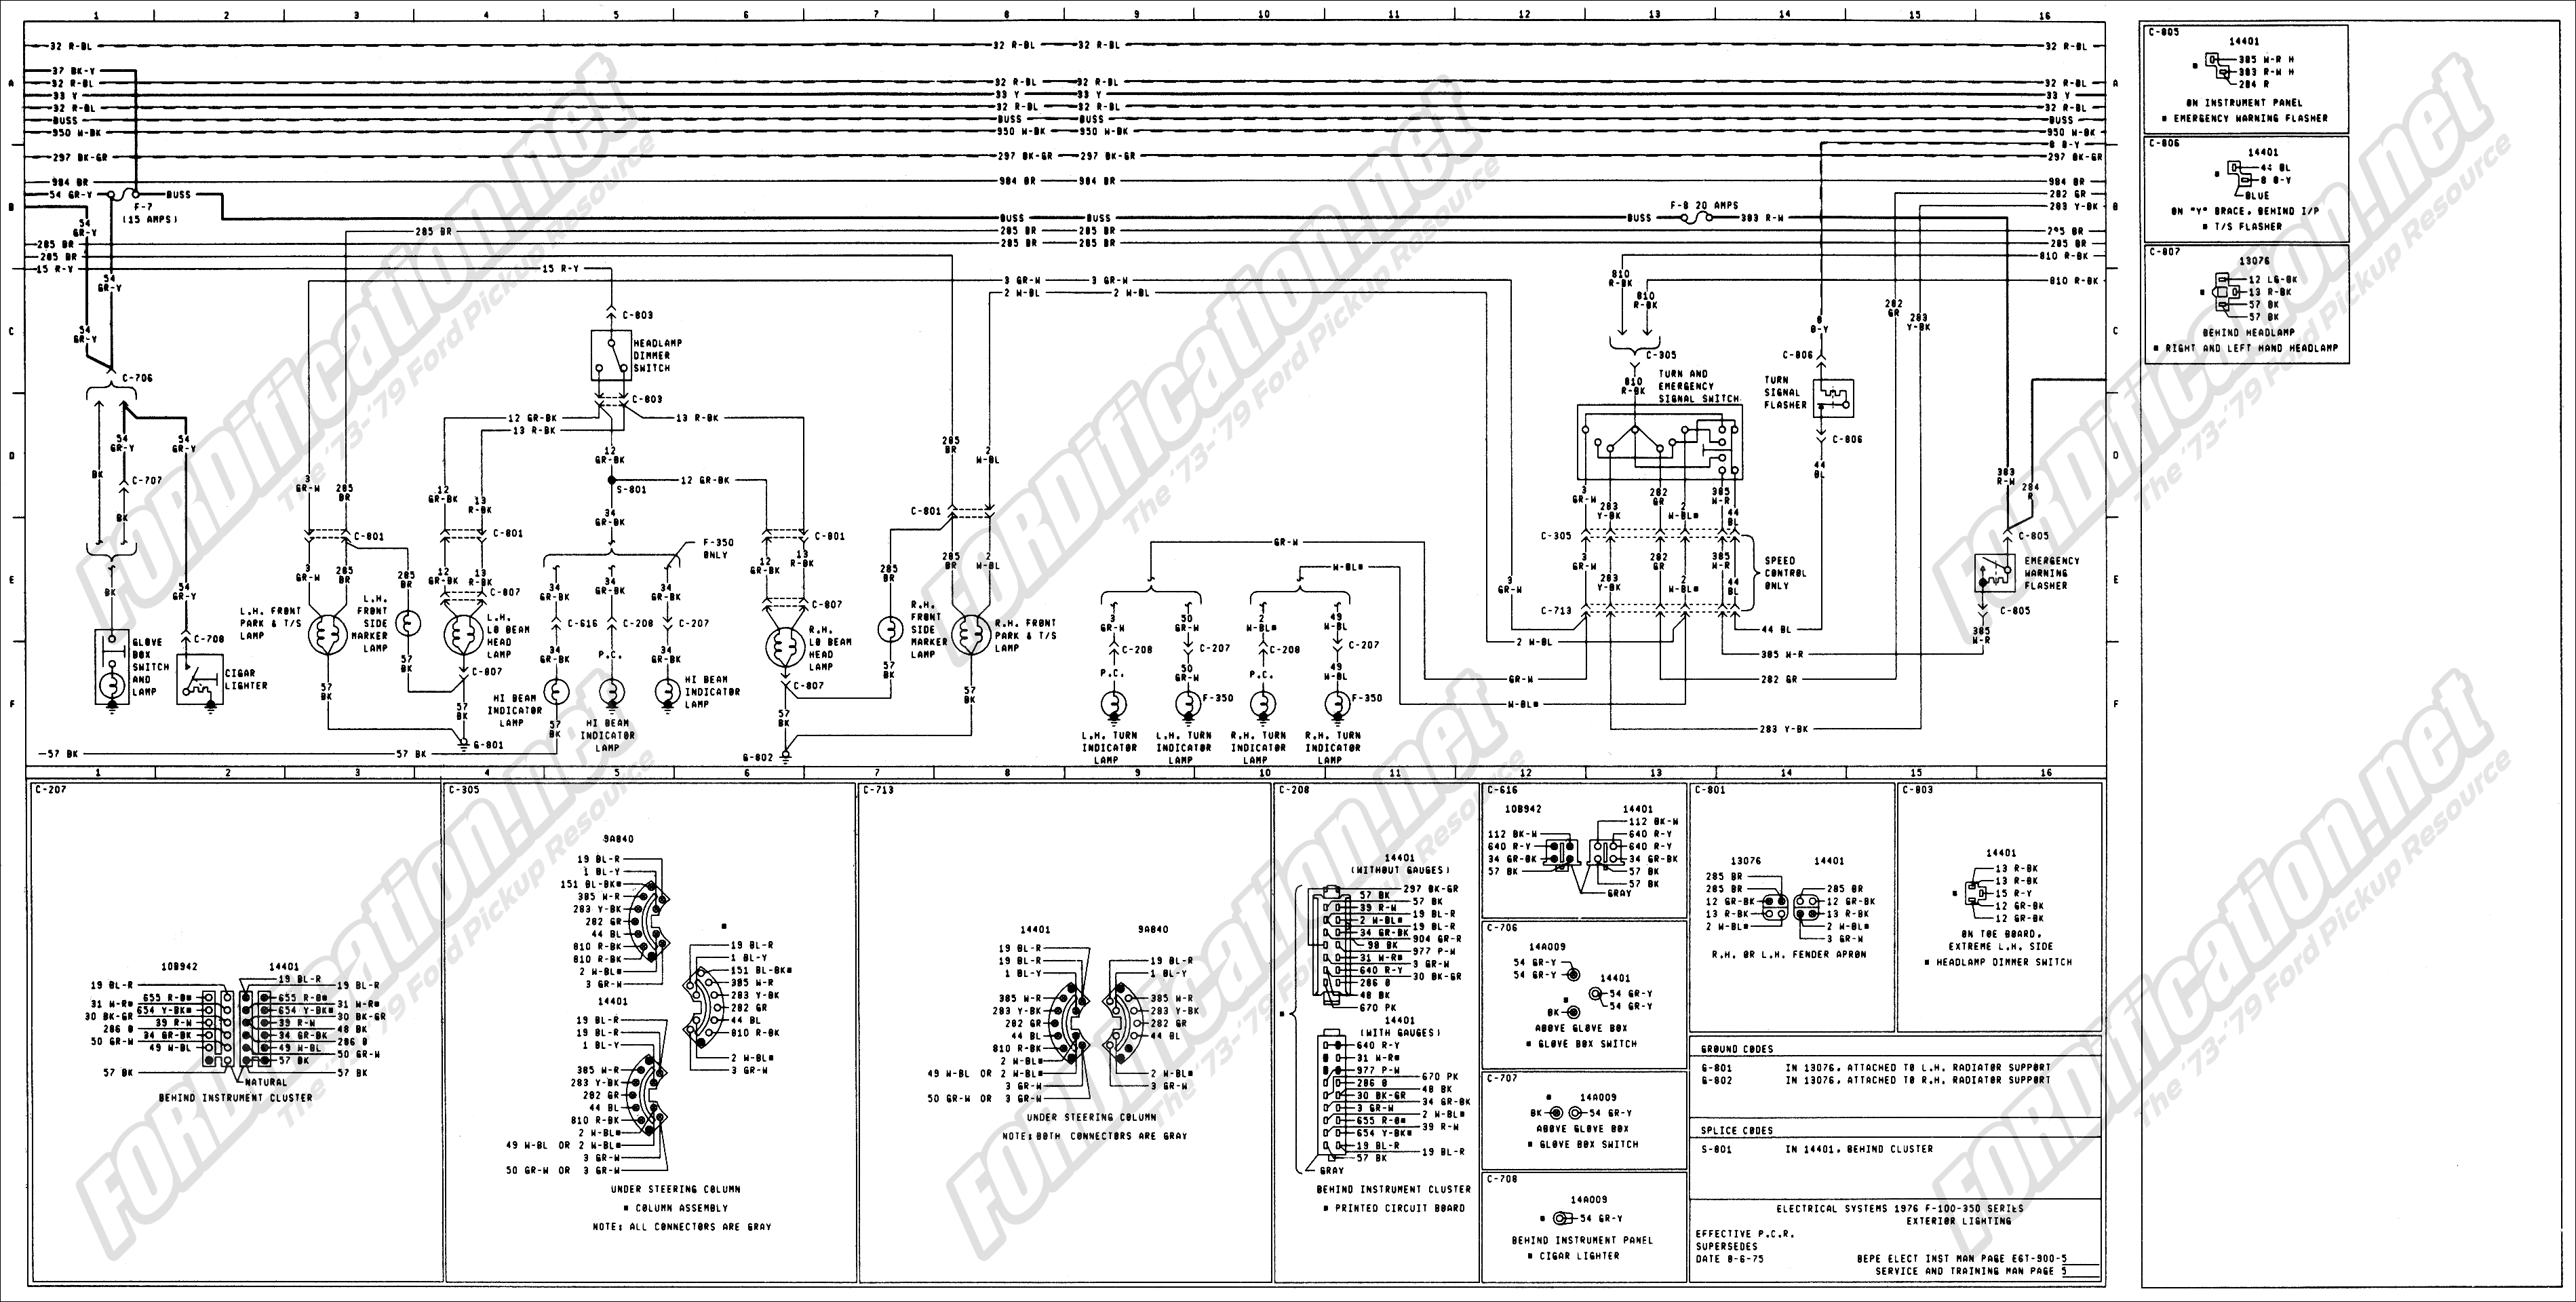 wiring_76master_5of9 1973 1979 ford truck wiring diagrams & schematics fordification net  at nearapp.co